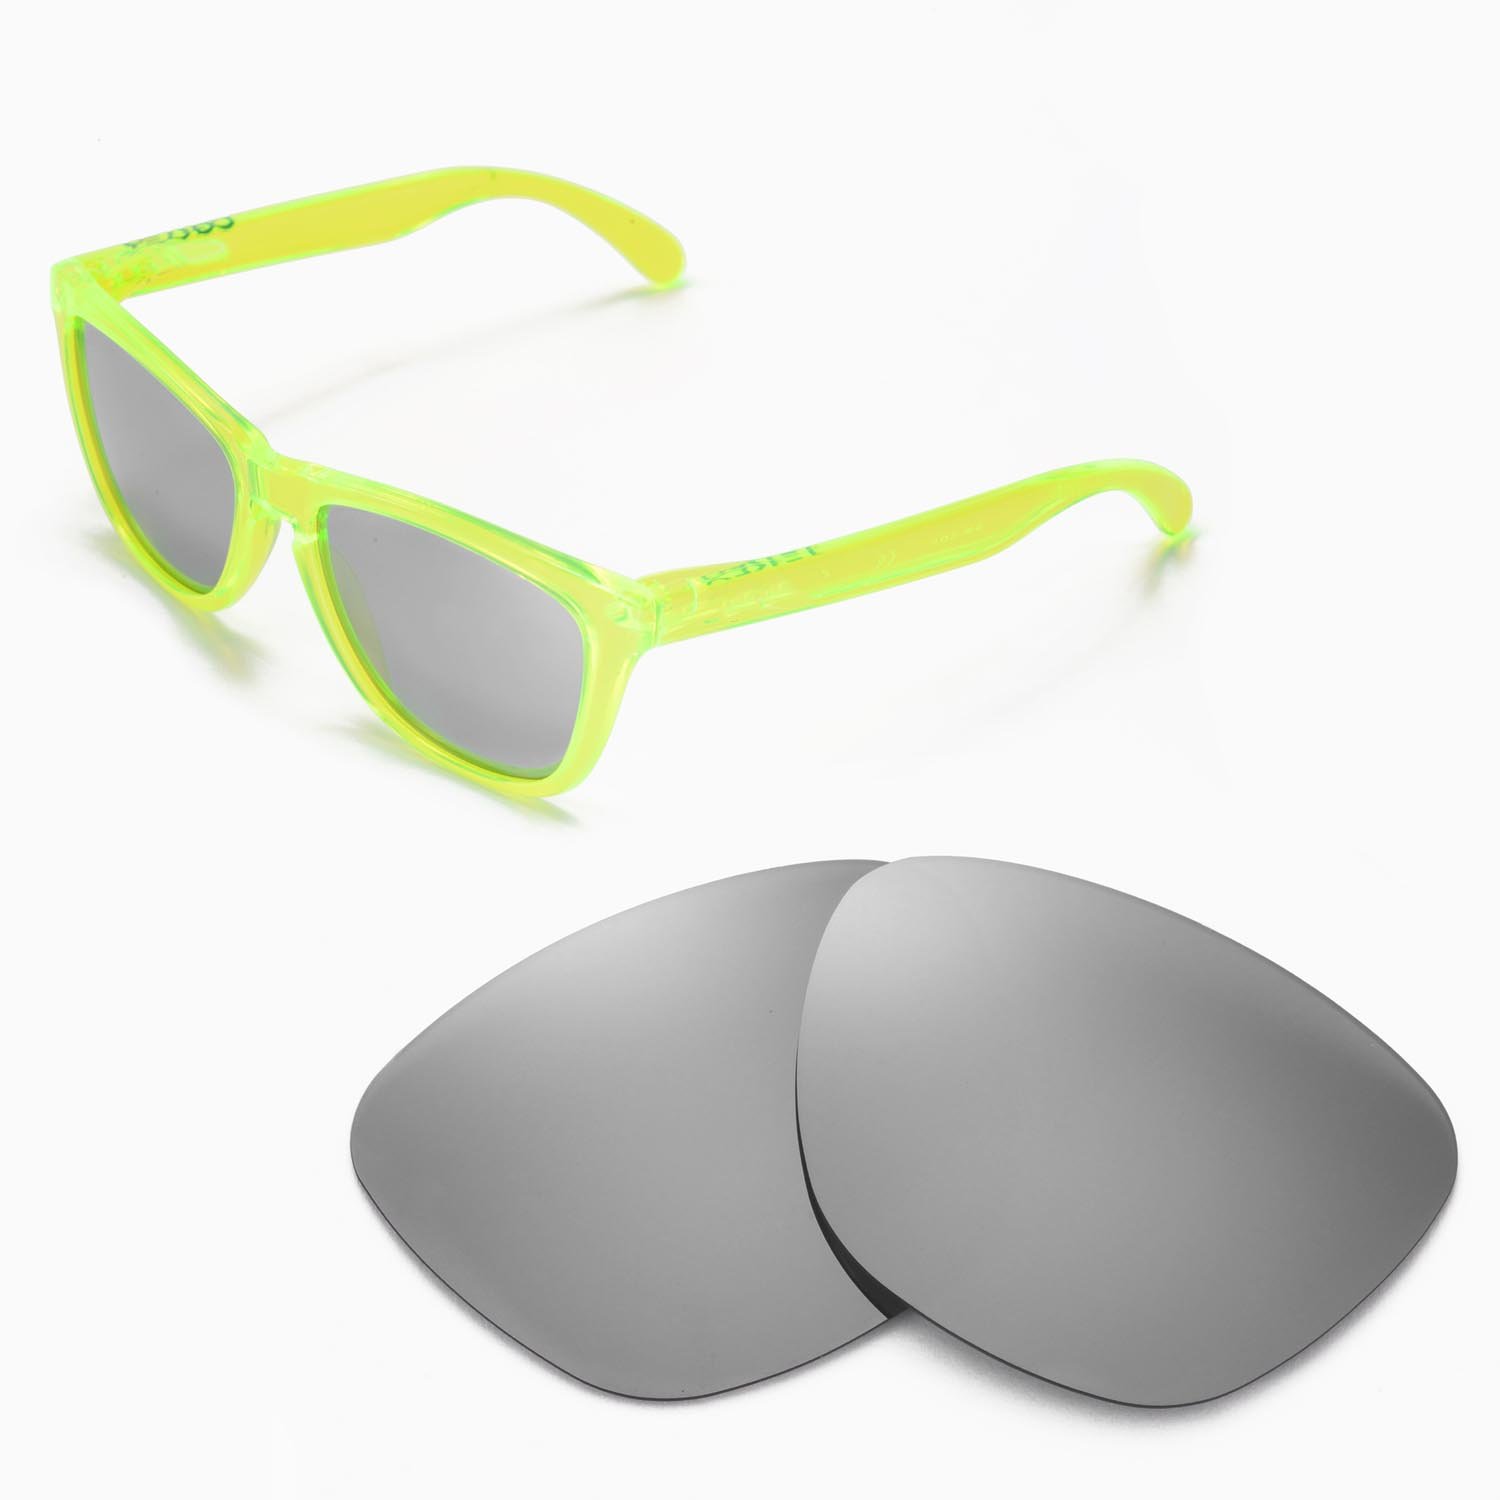 918b5c2a9c9 New Walleva Polarized Titanium Lenses For Oakley Frogskins ...